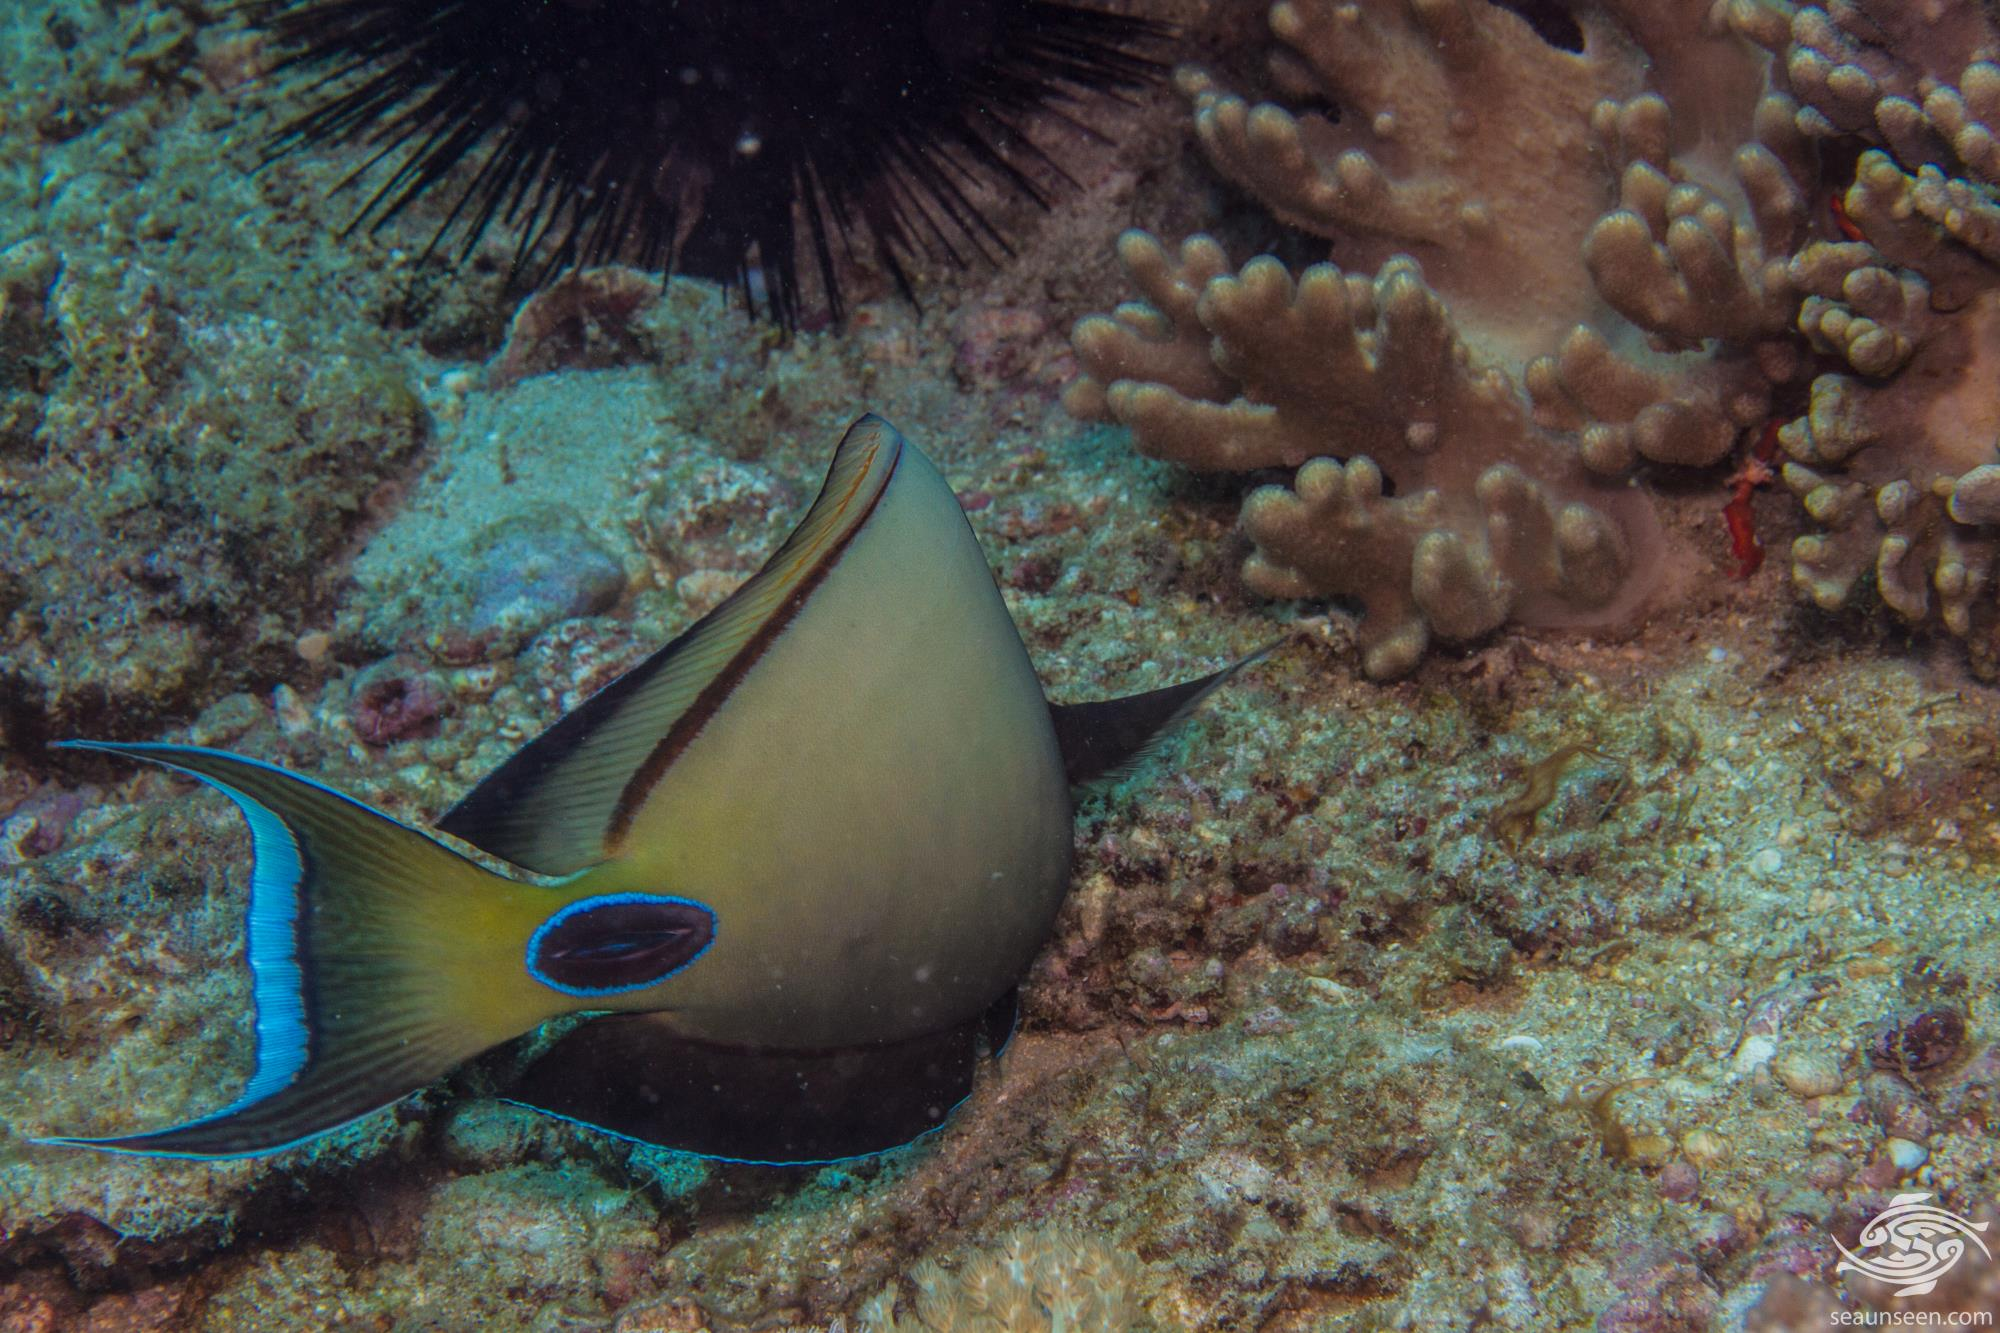 Lieutenant Surgeonfish (Acanthurus tennentii) is also known as the Doubleband Surgeonfish